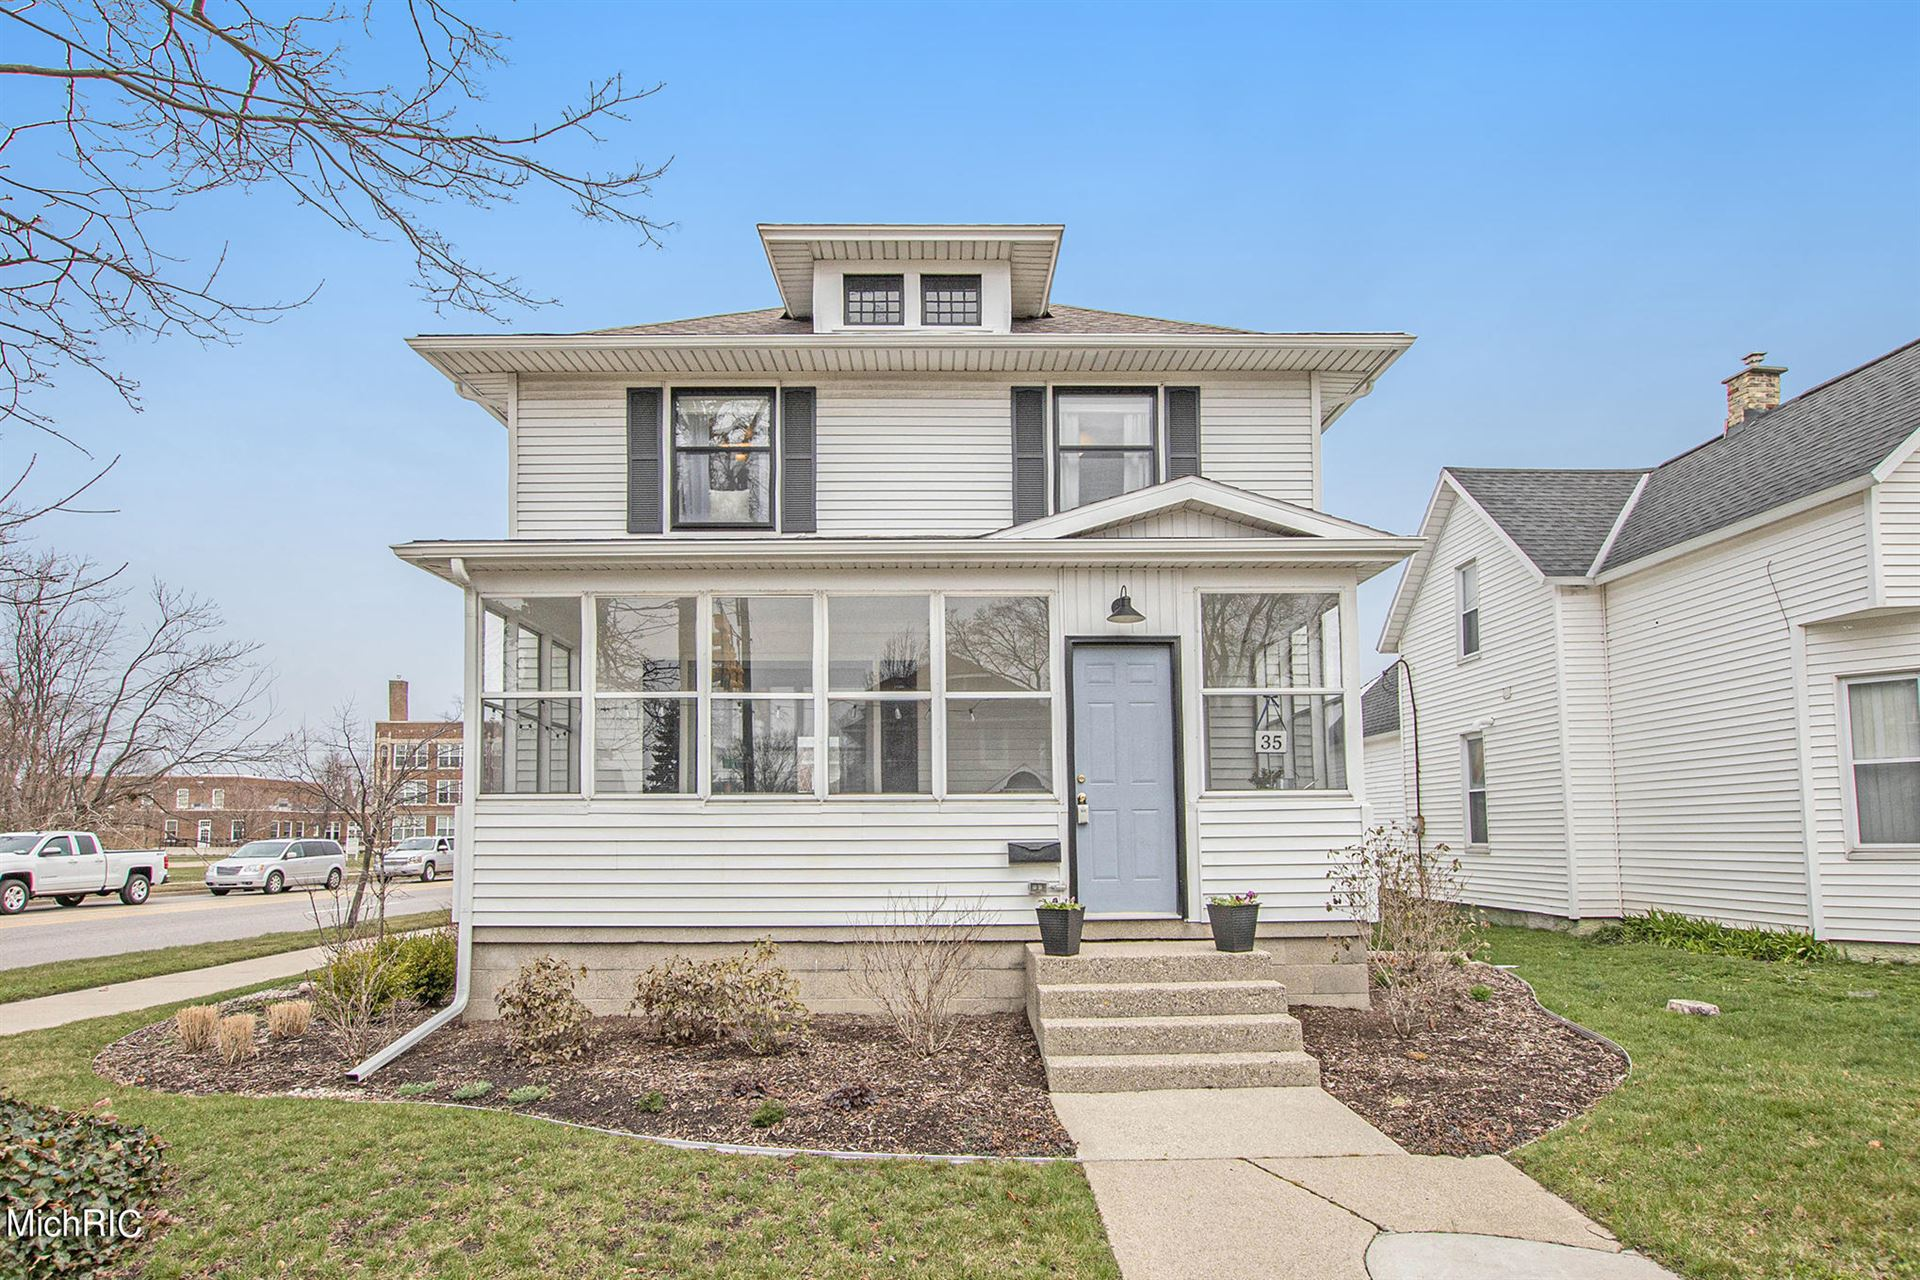 35 W 17th Street, Holland, MI 49423 - MLS#: 21012268